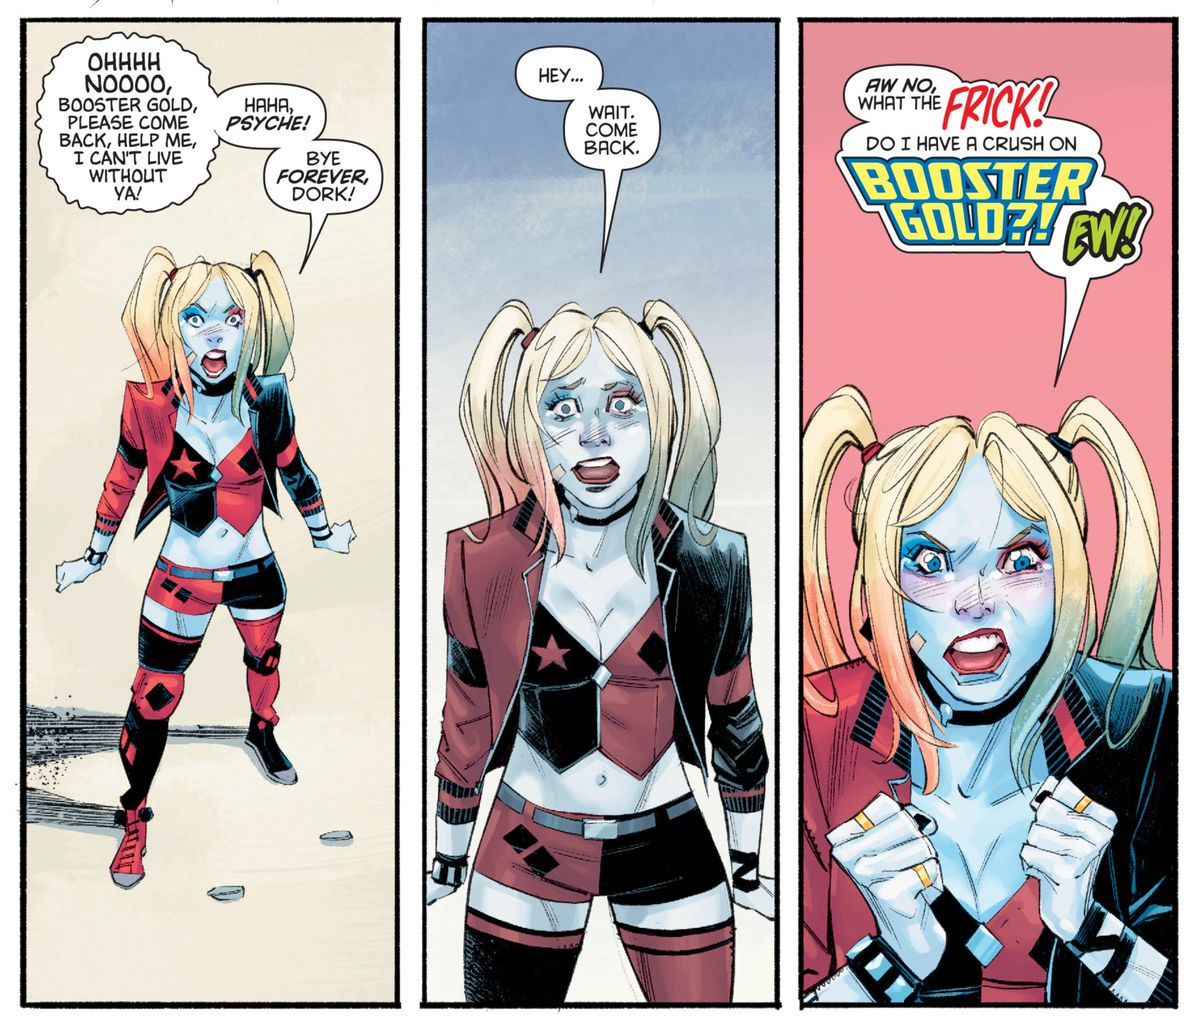 """Harley yells angrily at Booster Gold as he leaves, then changes tack. """"Hey... Wait. Come back. Aw no, what the FRICK!"""" she exclaims. """"Do I have a crush on Booster Gold?! EW!"""" in Harley Quinn #72, DC Comics (2020)."""